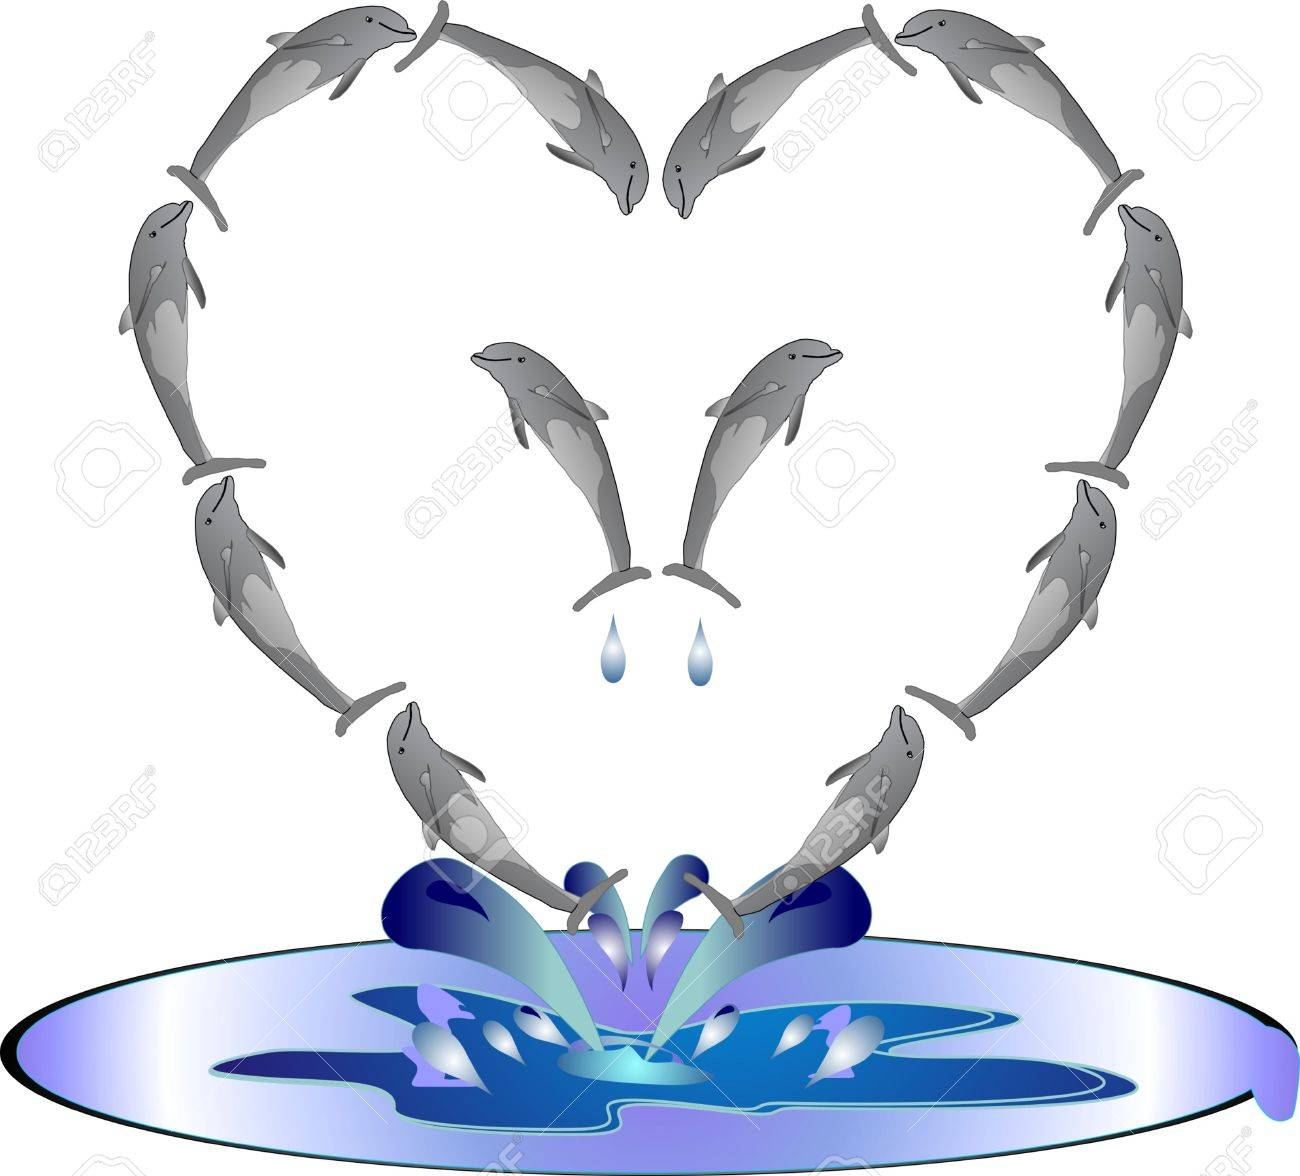 Dolphins Jumping Out Of Water Clipart